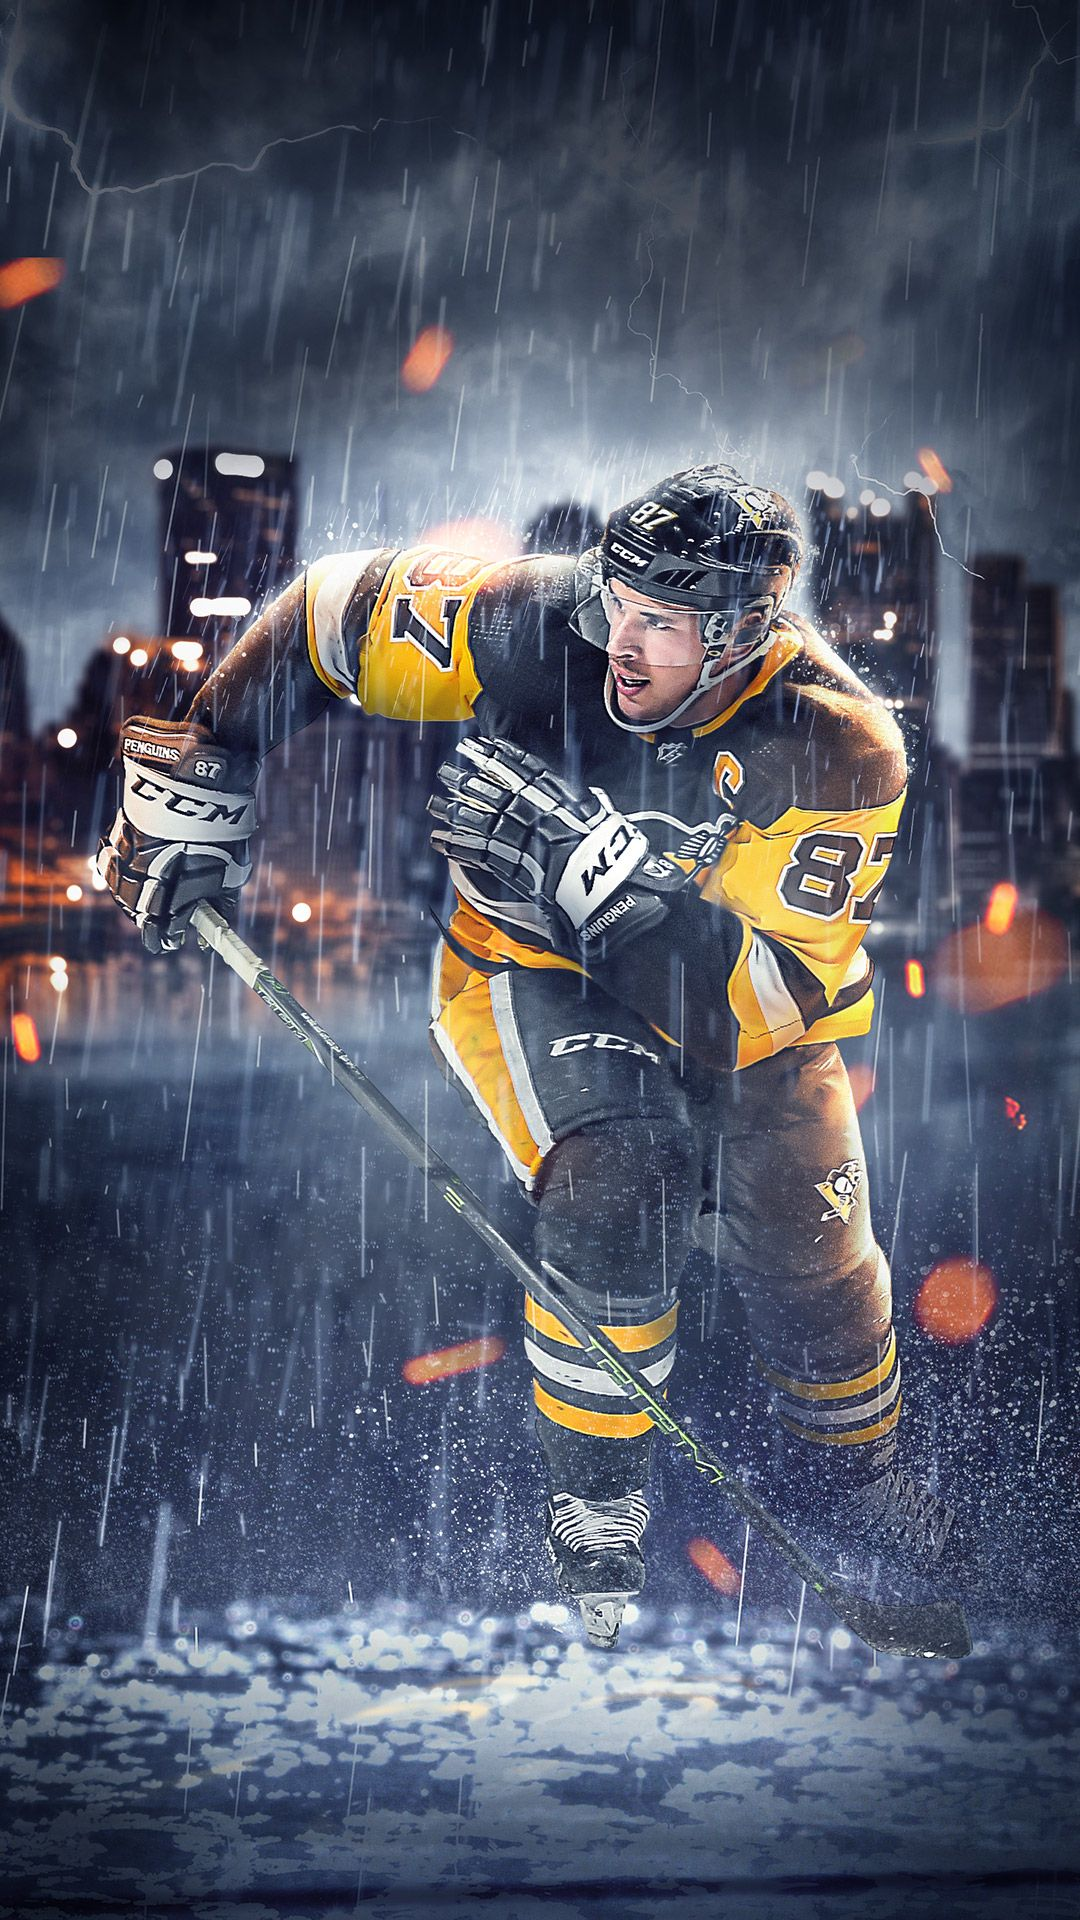 Pin By Nathan Young On Hockey Pittsburgh Penguins Hockey